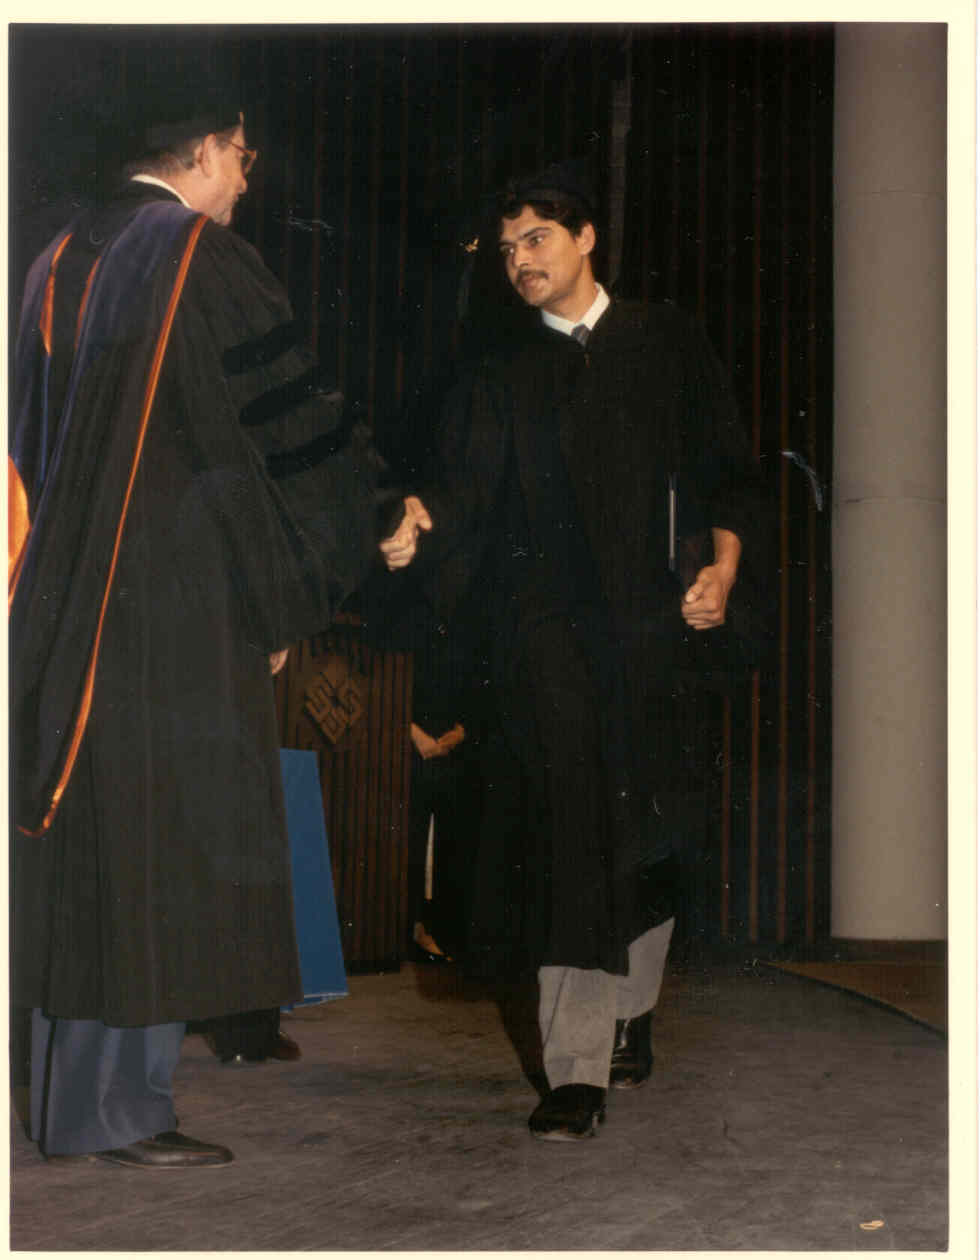 Click to enlarge - Myself at 29 yrs - during graduation ceremony in 1987, when I received my Ist Bachelors degree in Computer Science